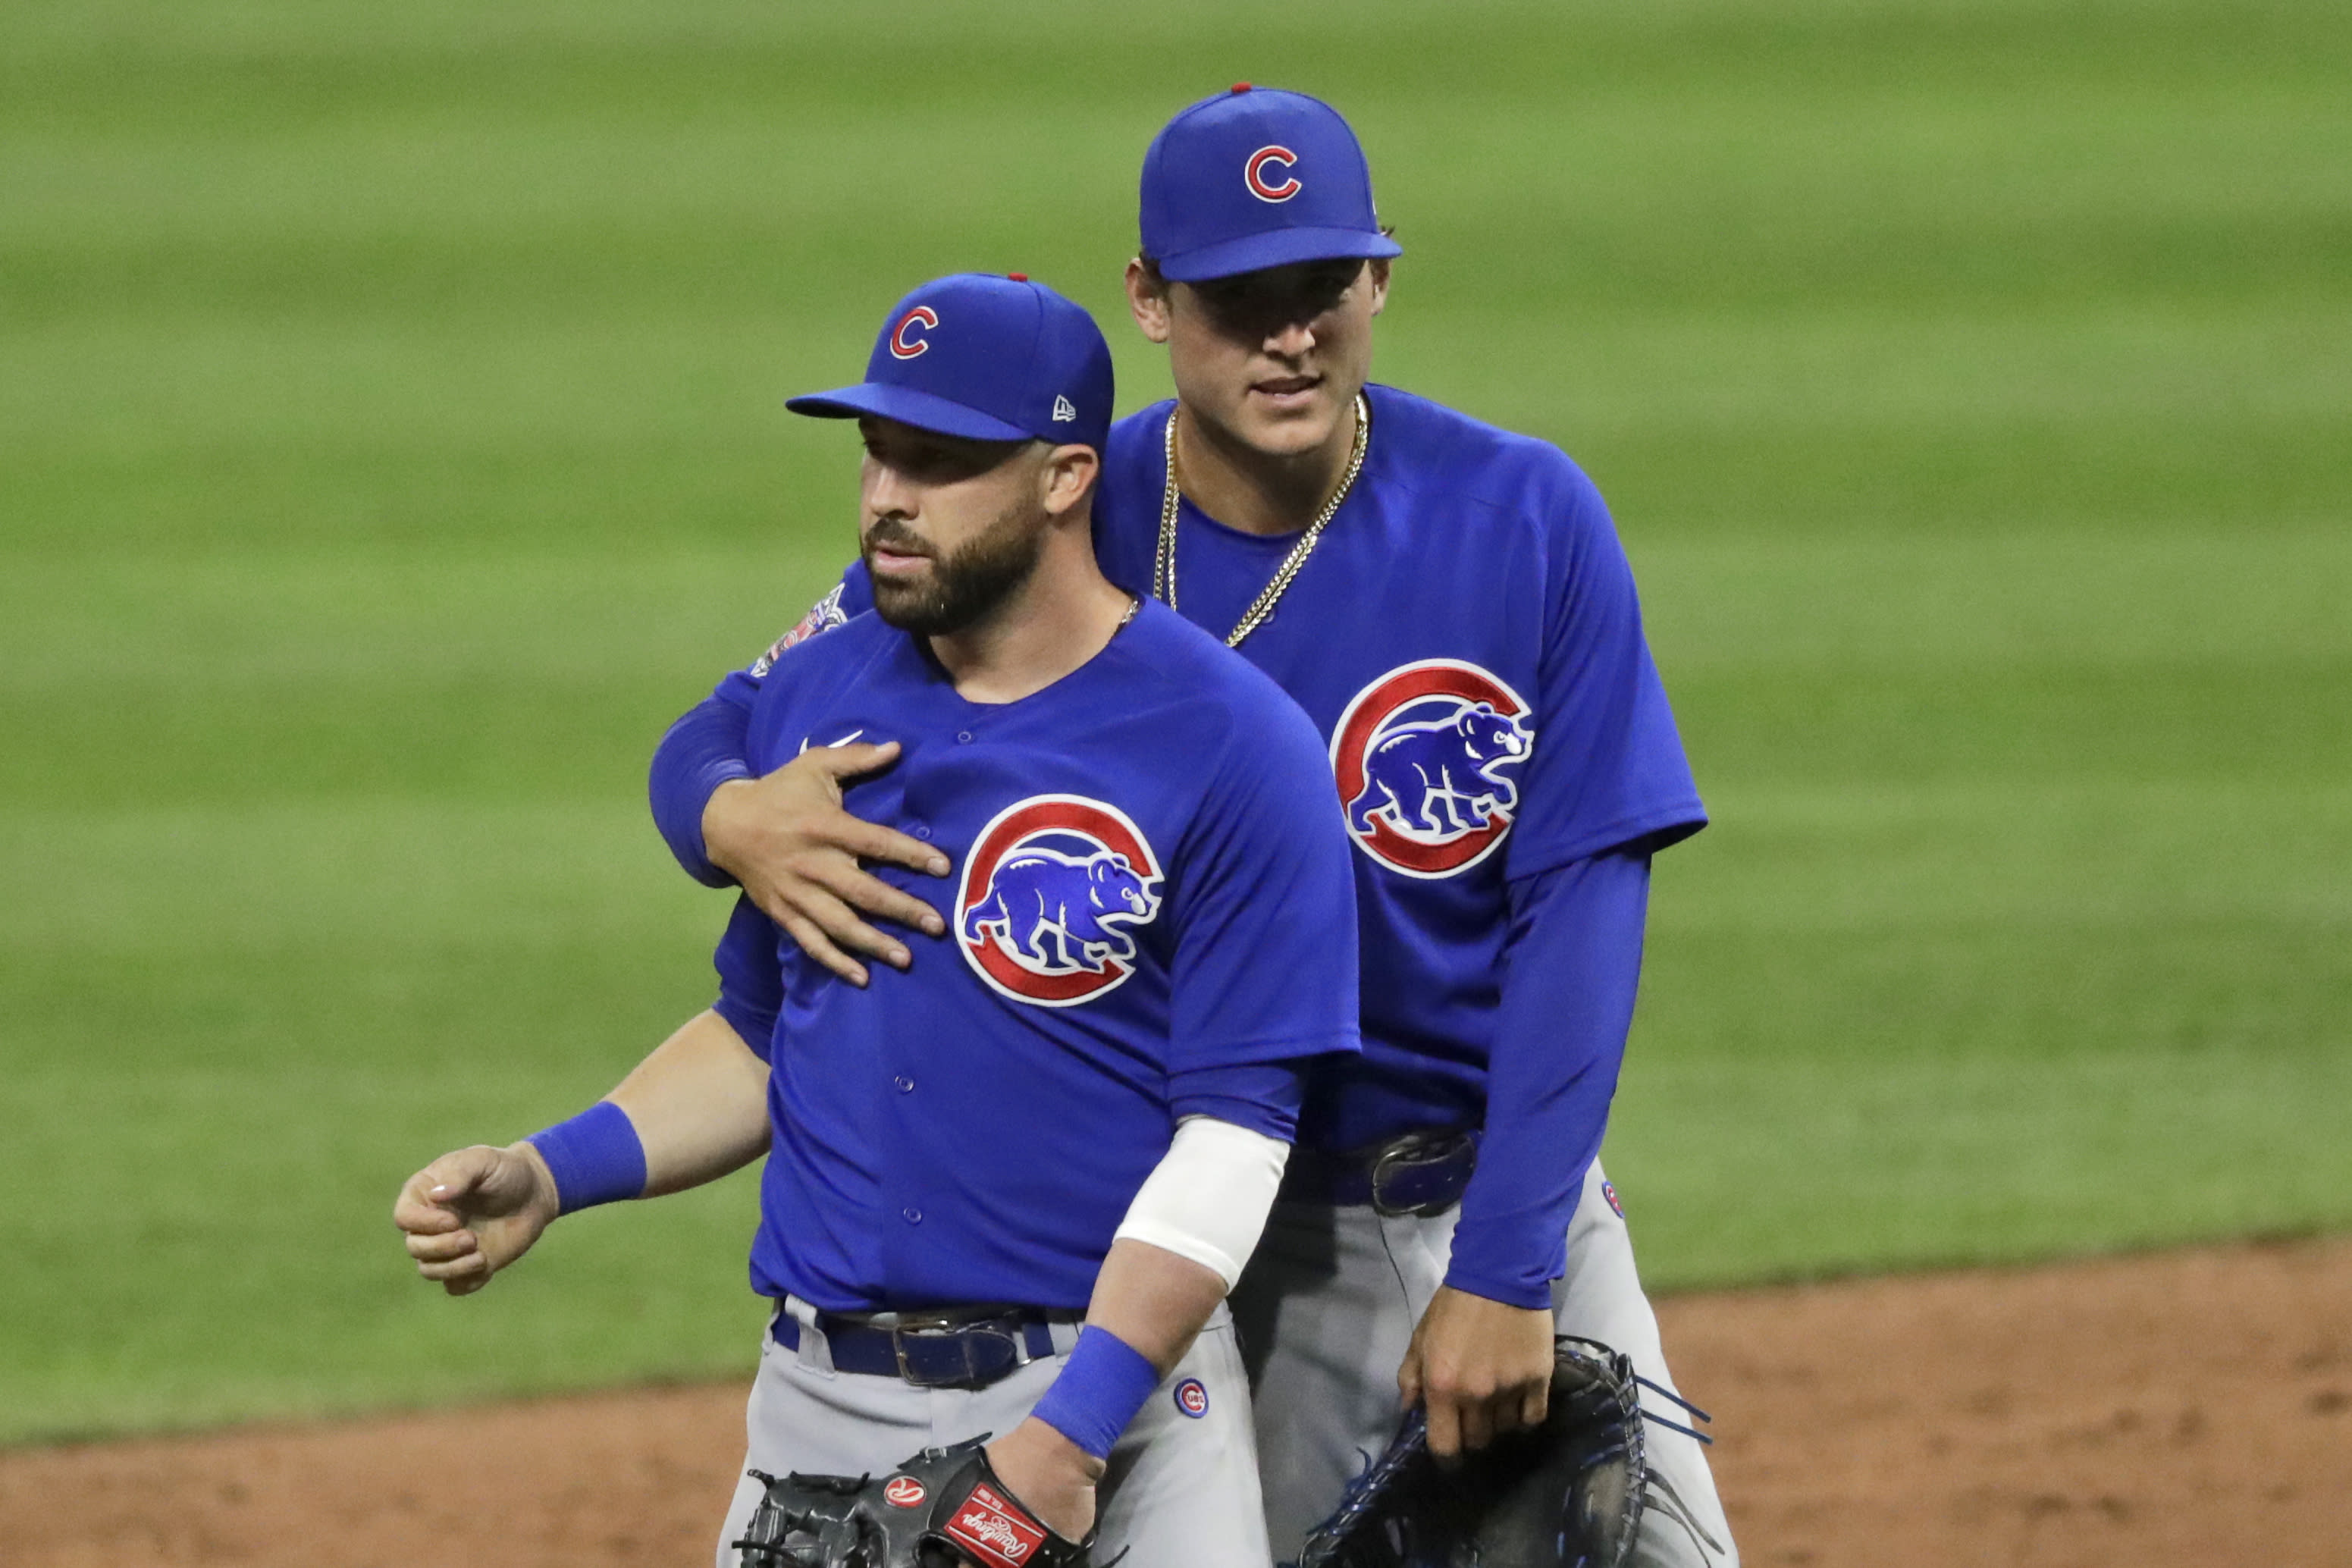 Chicago Cubs' Anthony Rizzo, right, and Jason Kipnis hug after the Cubs defeated the Cleveland Indians 7-2 in a baseball game, Wednesday, Aug. 12, 2020, in Cleveland. (AP Photo/Tony Dejak)